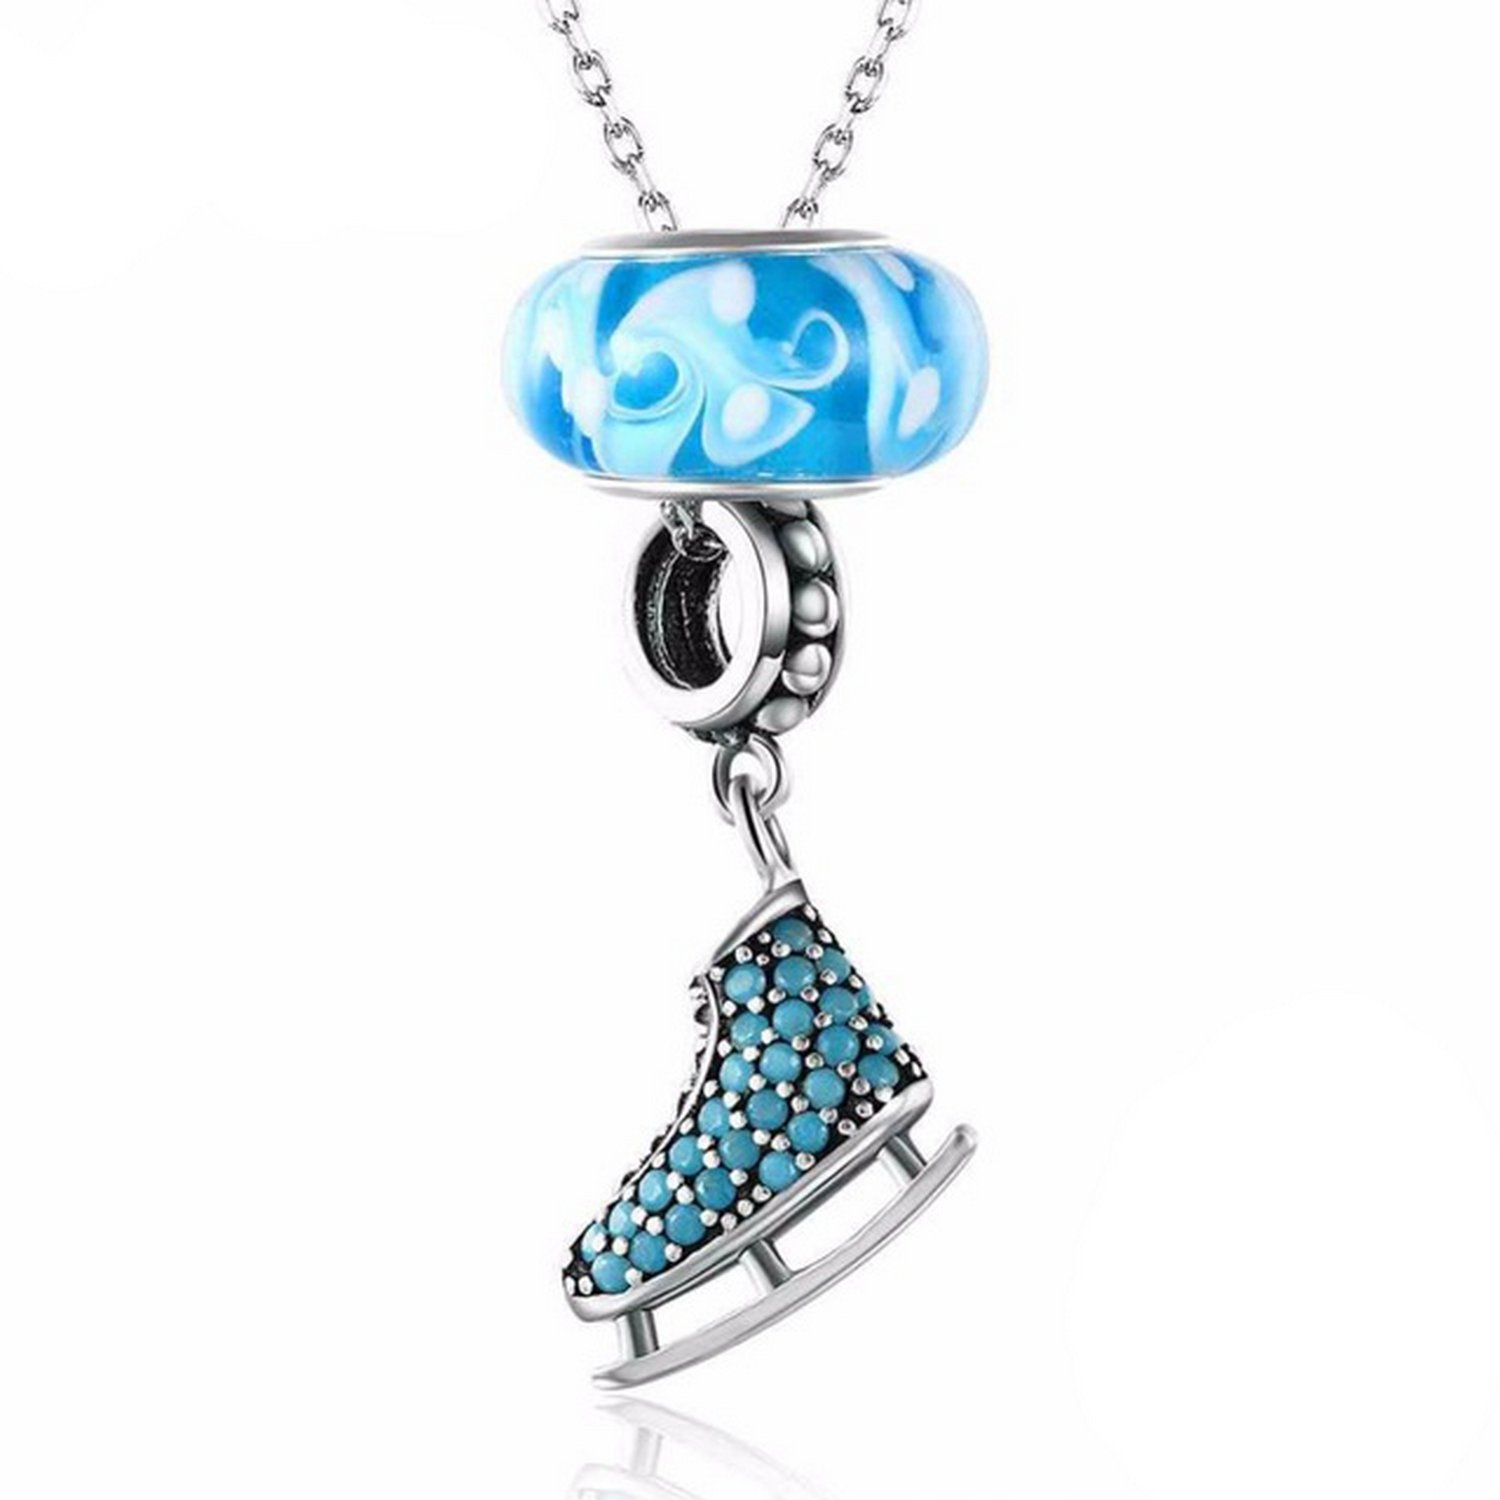 CS-DB Jewelry Silver Roller Skates Chain Charm Pendants Necklaces